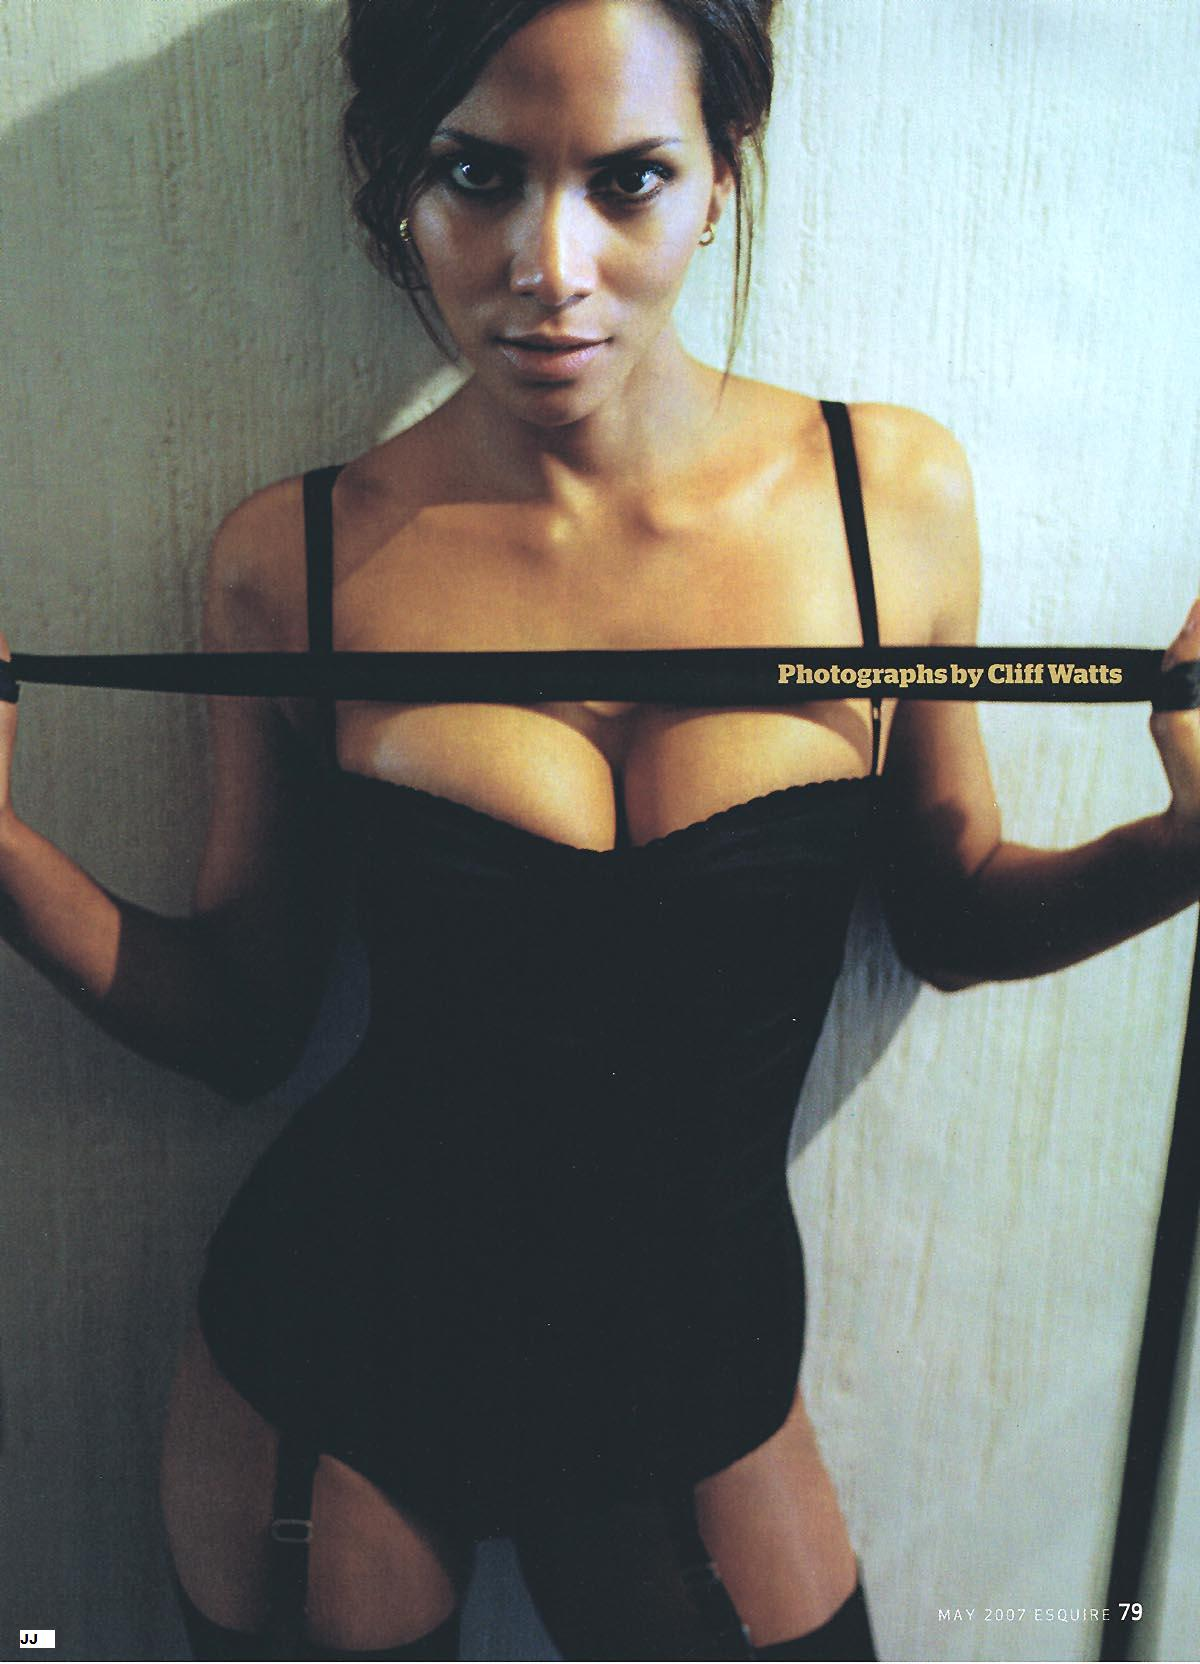 38190_Halle_Berry_Esquire_May_2007_03_www.hqparadise.hu_123_509lo.jpg